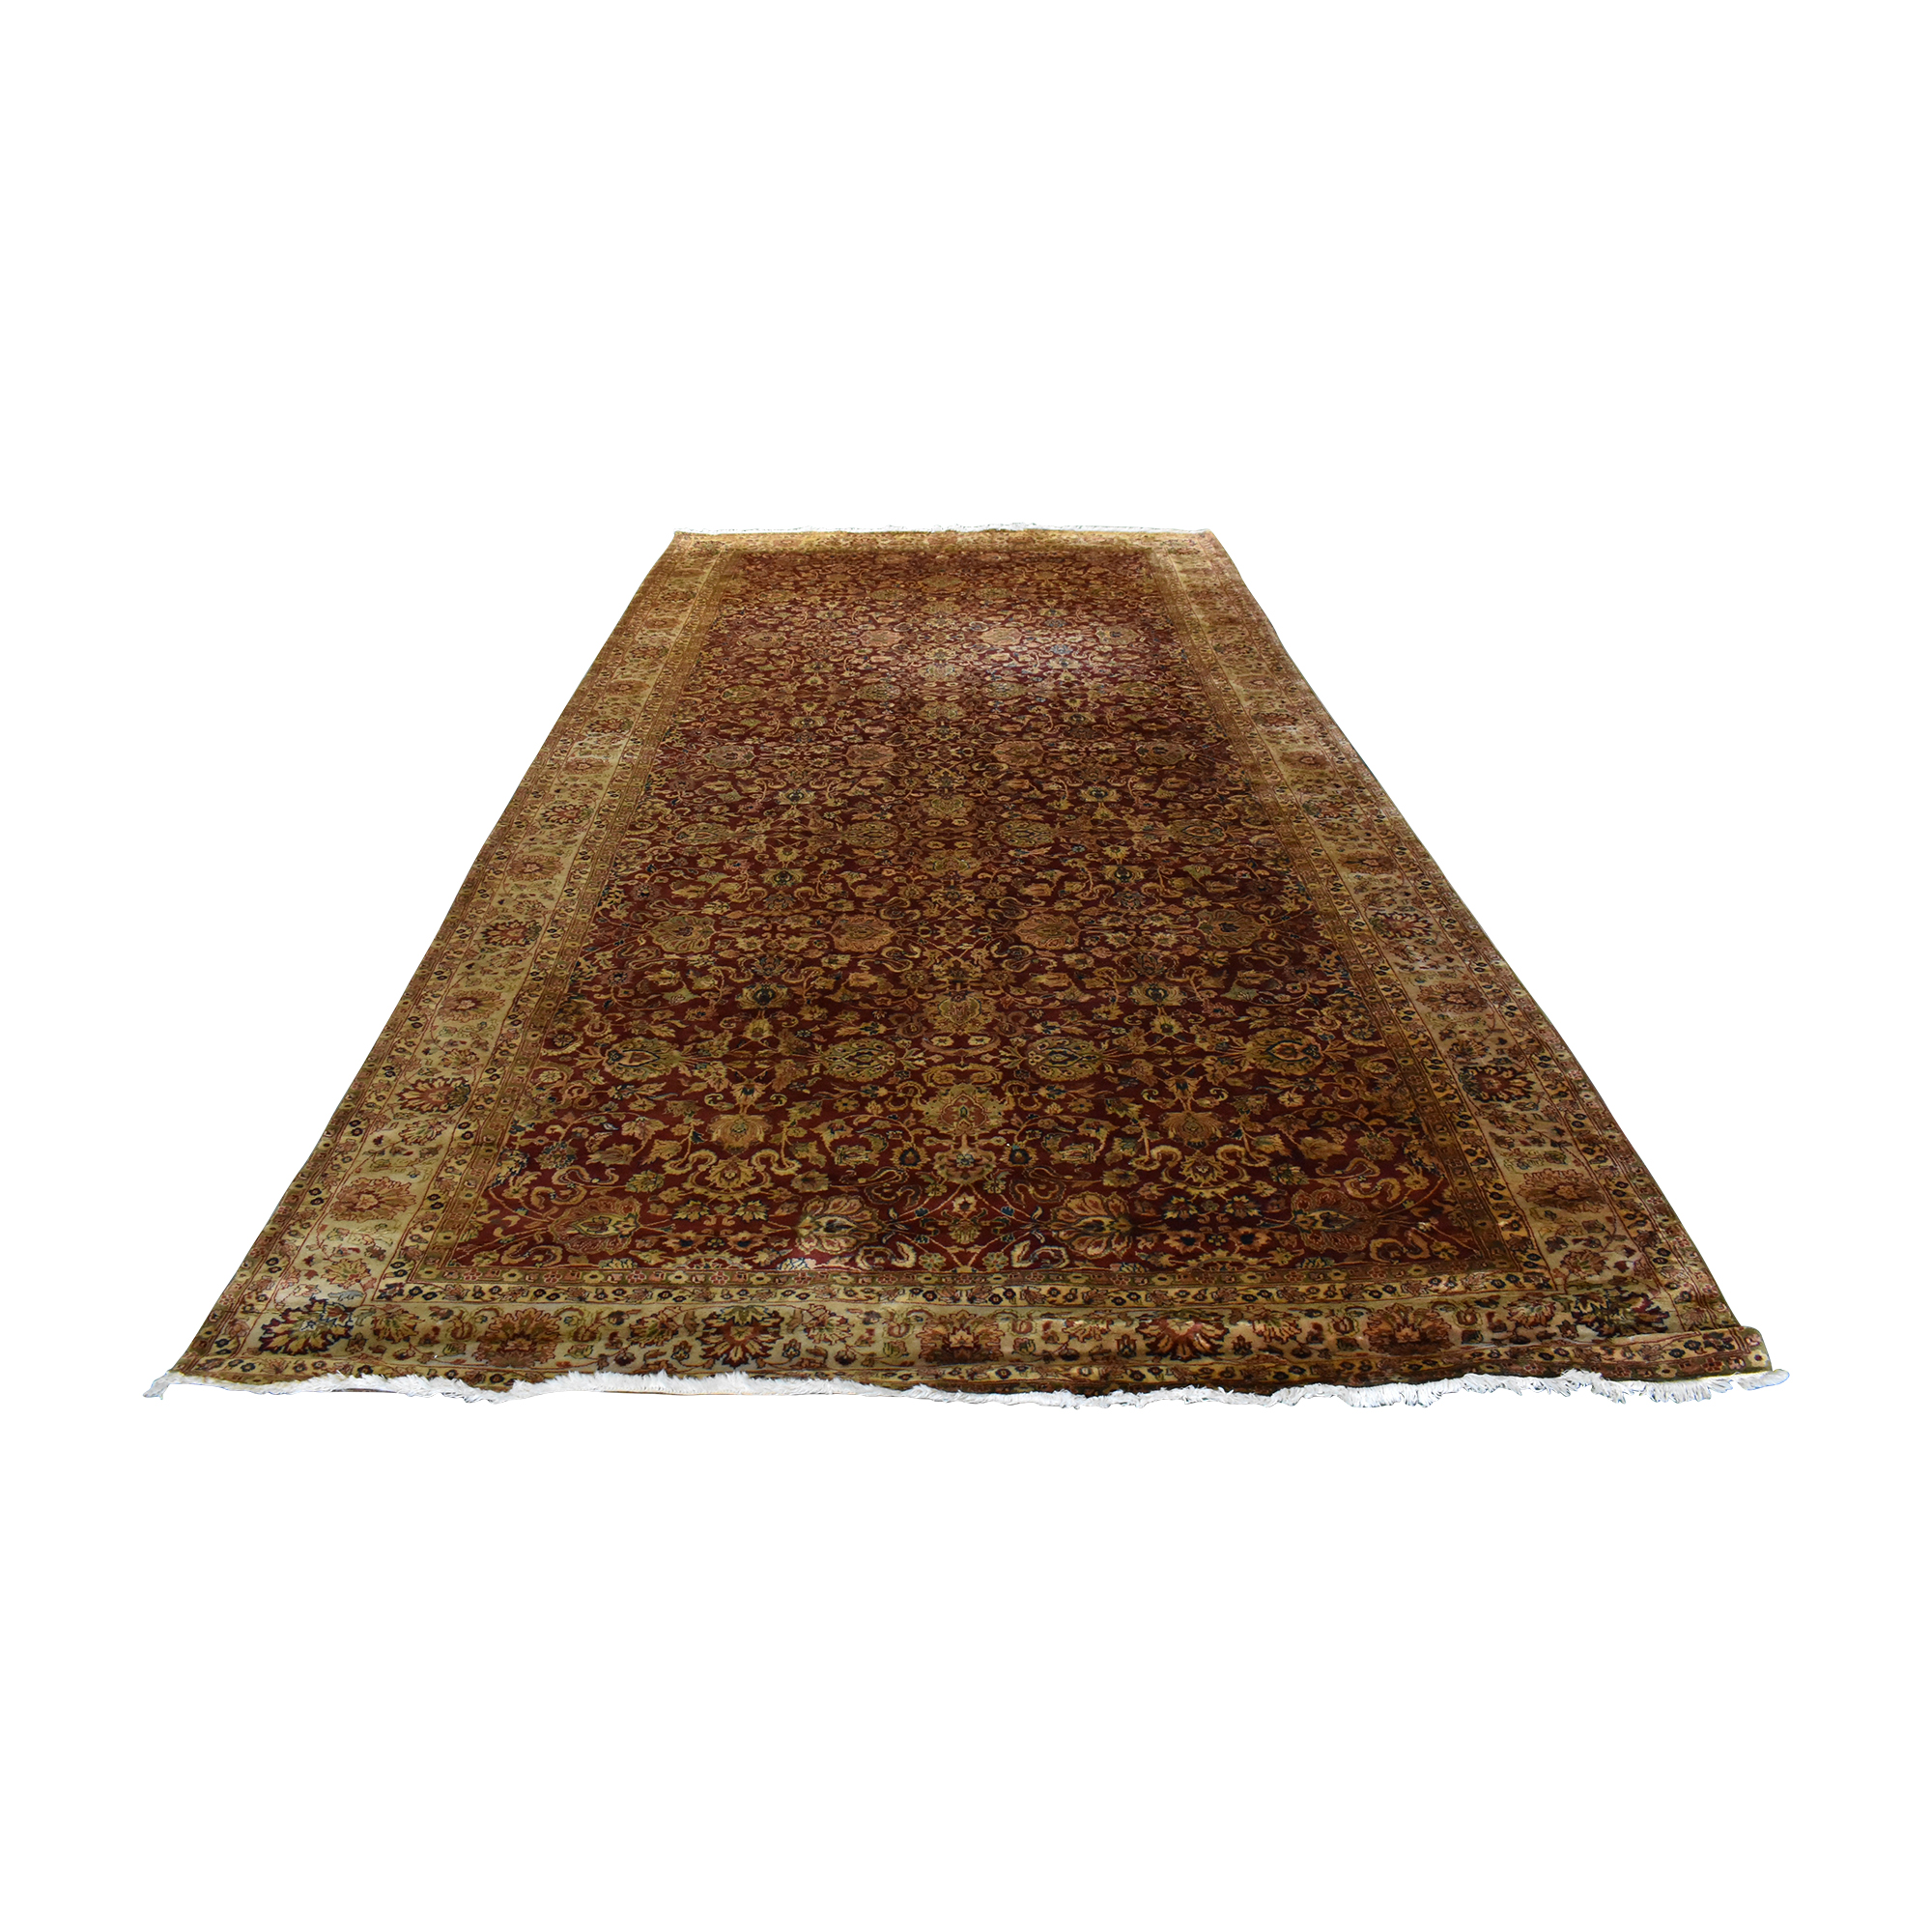 ABC Carpet & Home ABC Carpet & Home Patterned Area Rug nyc